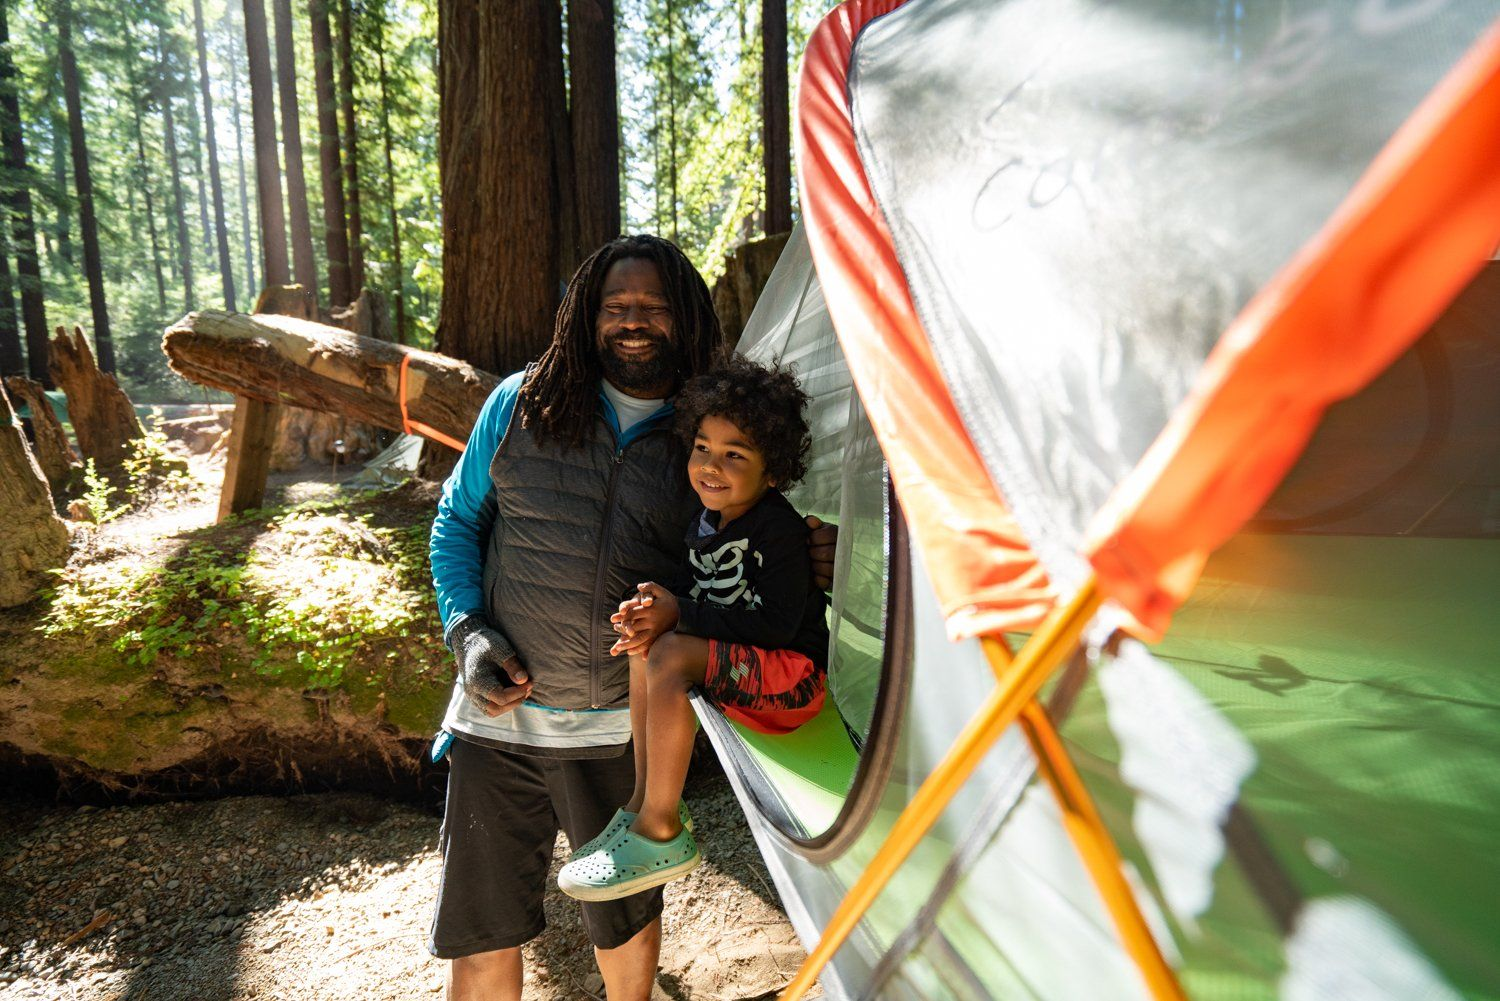 The Best Father's Day Gifts for the Adventurous Dad